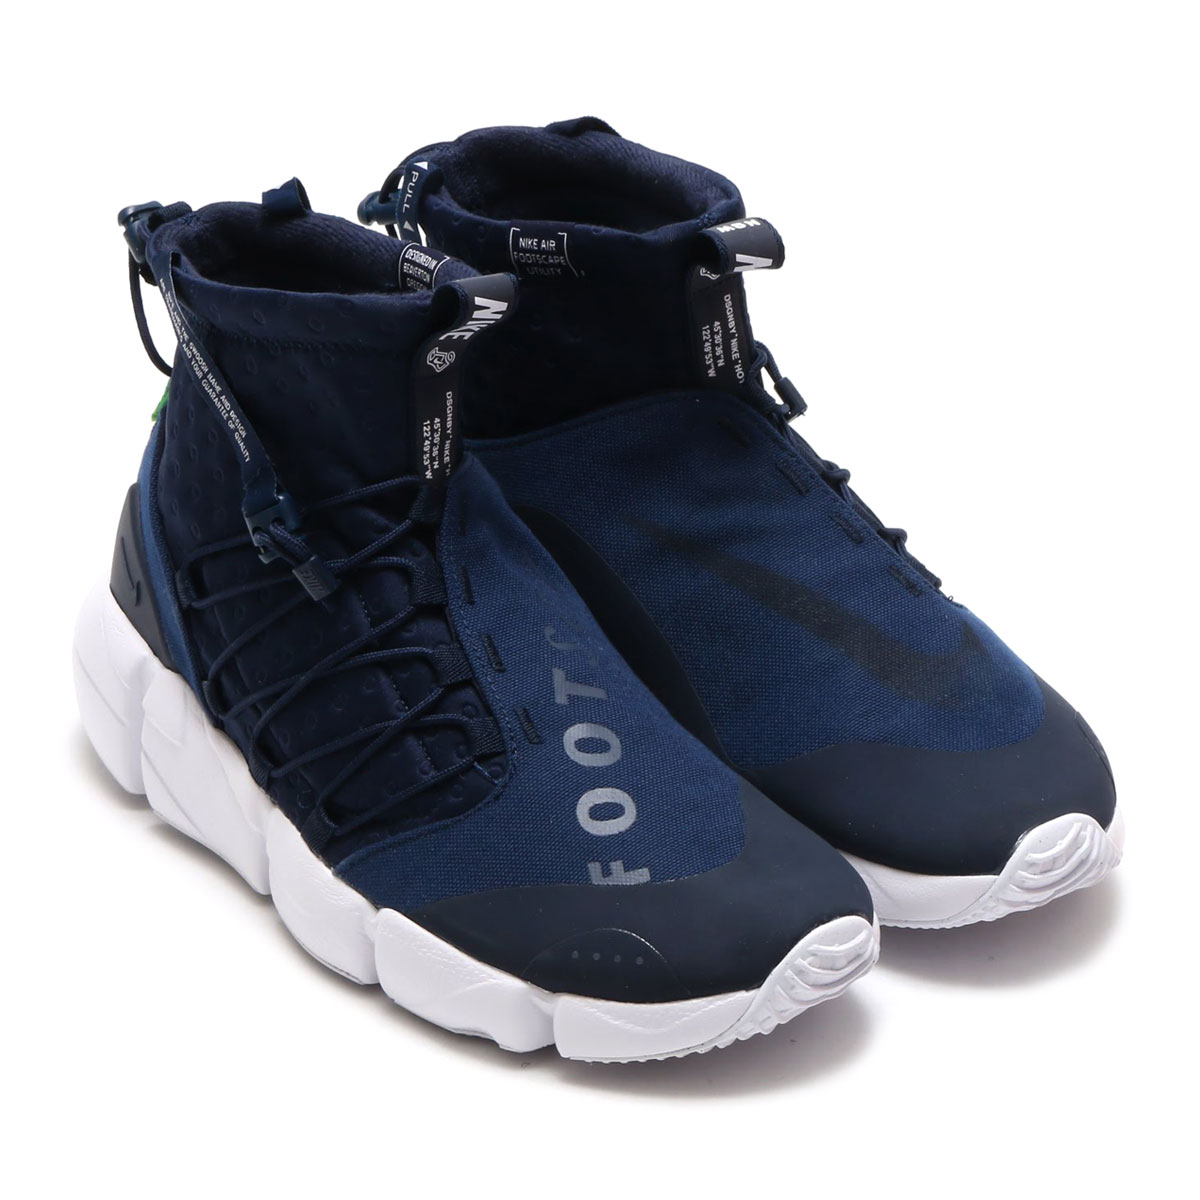 f027448a5f478d NIKEAIRFOOTSCAPEMIDUTILITY(ナイキエアフットスケープミッドユーティリティ)(OBSIDIAN THUNDERBLUE-SPINACHGREEN)18SP-